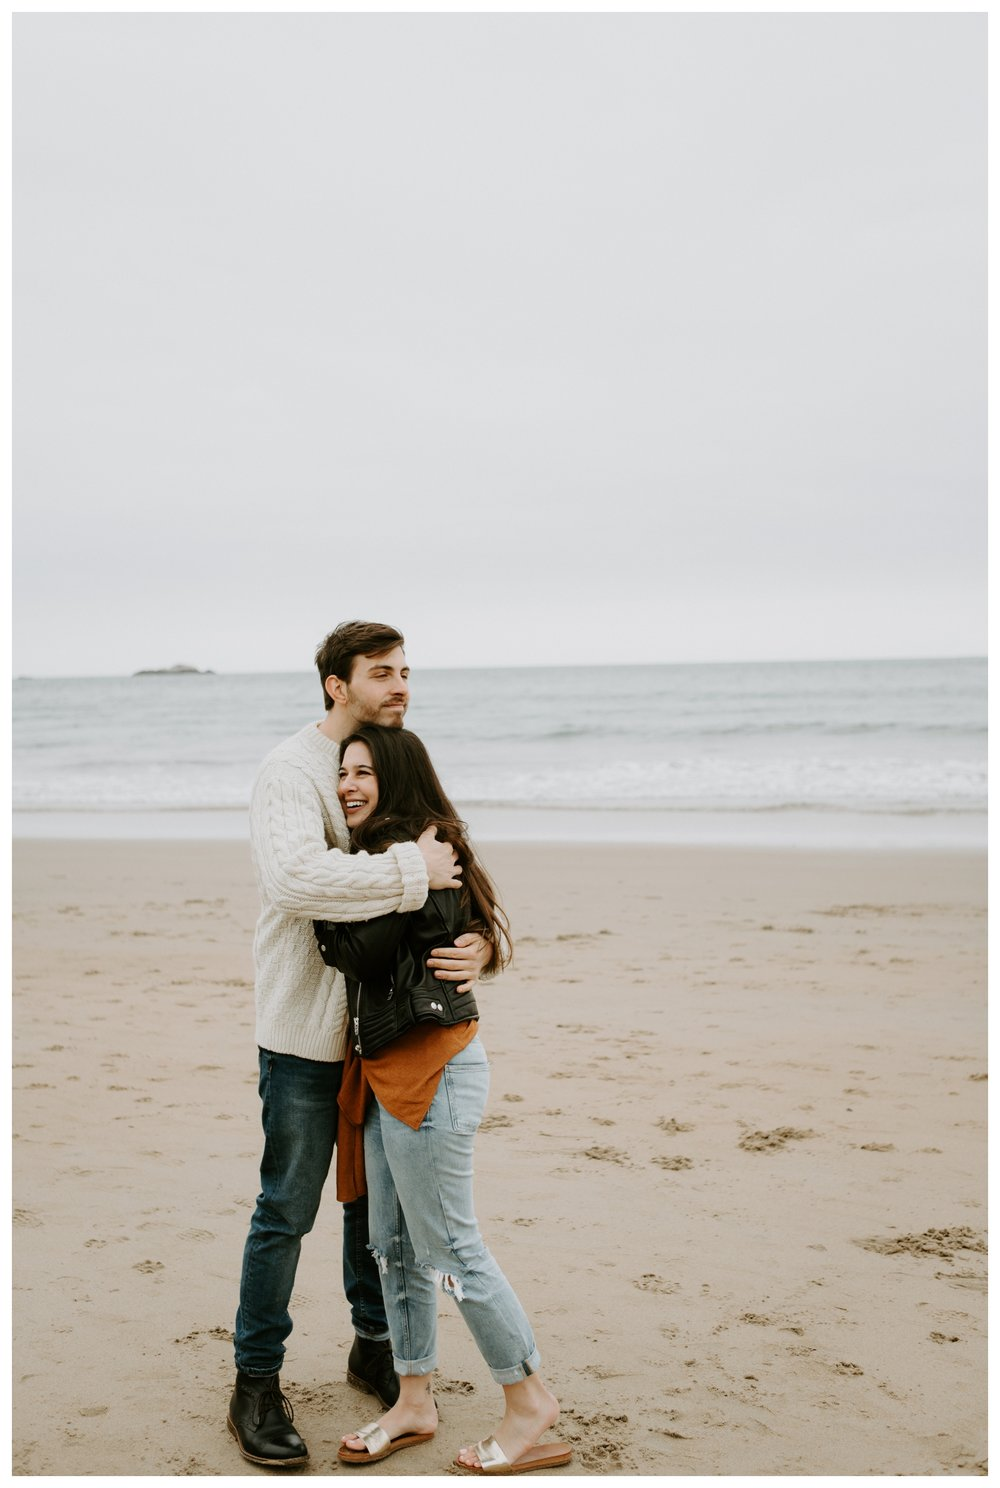 singing-beach-engagement-2018-05-22_0033.jpg